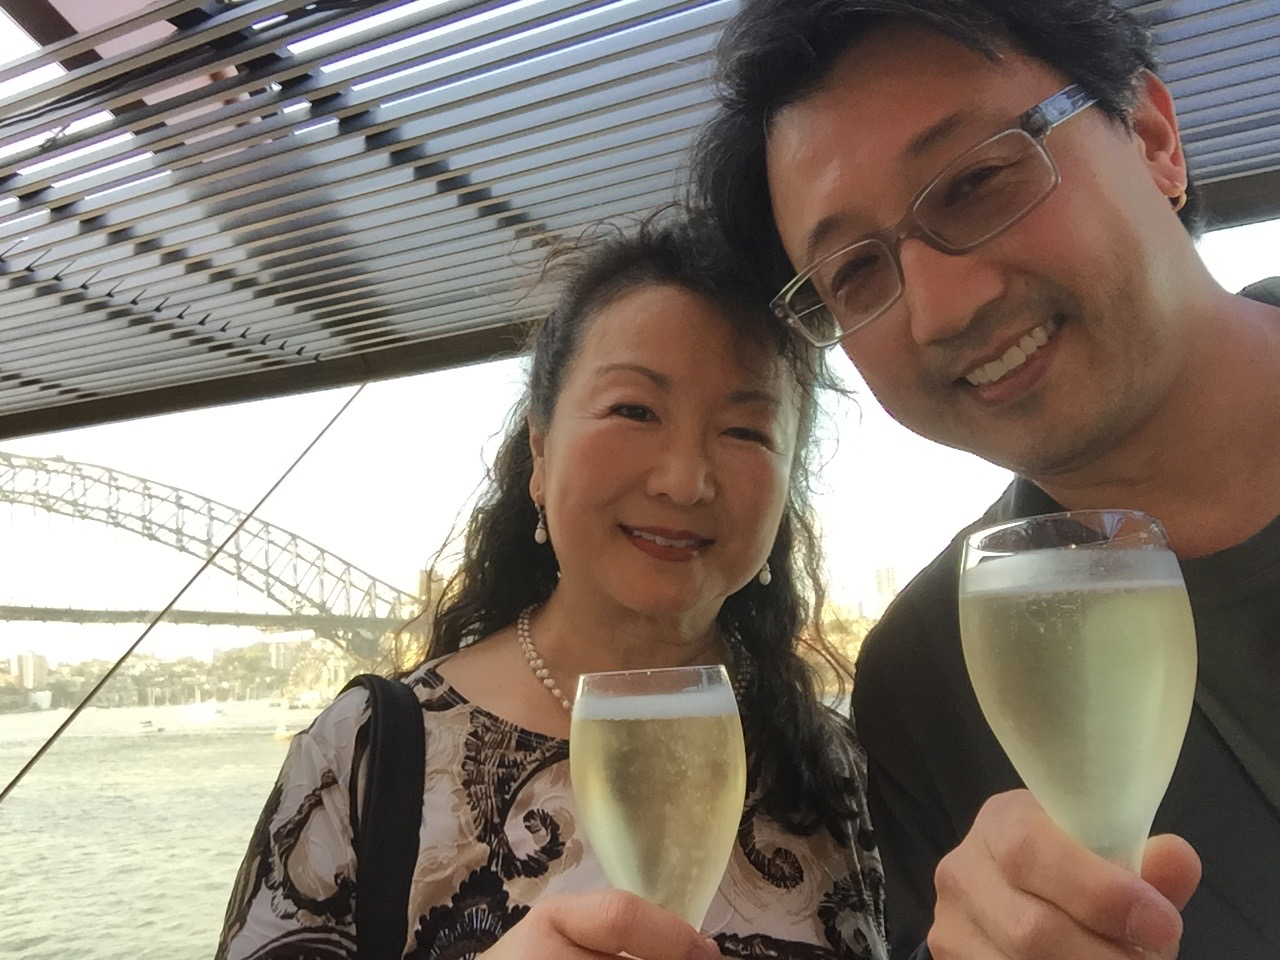 Toasting with Aussie Chandon at the Opera House